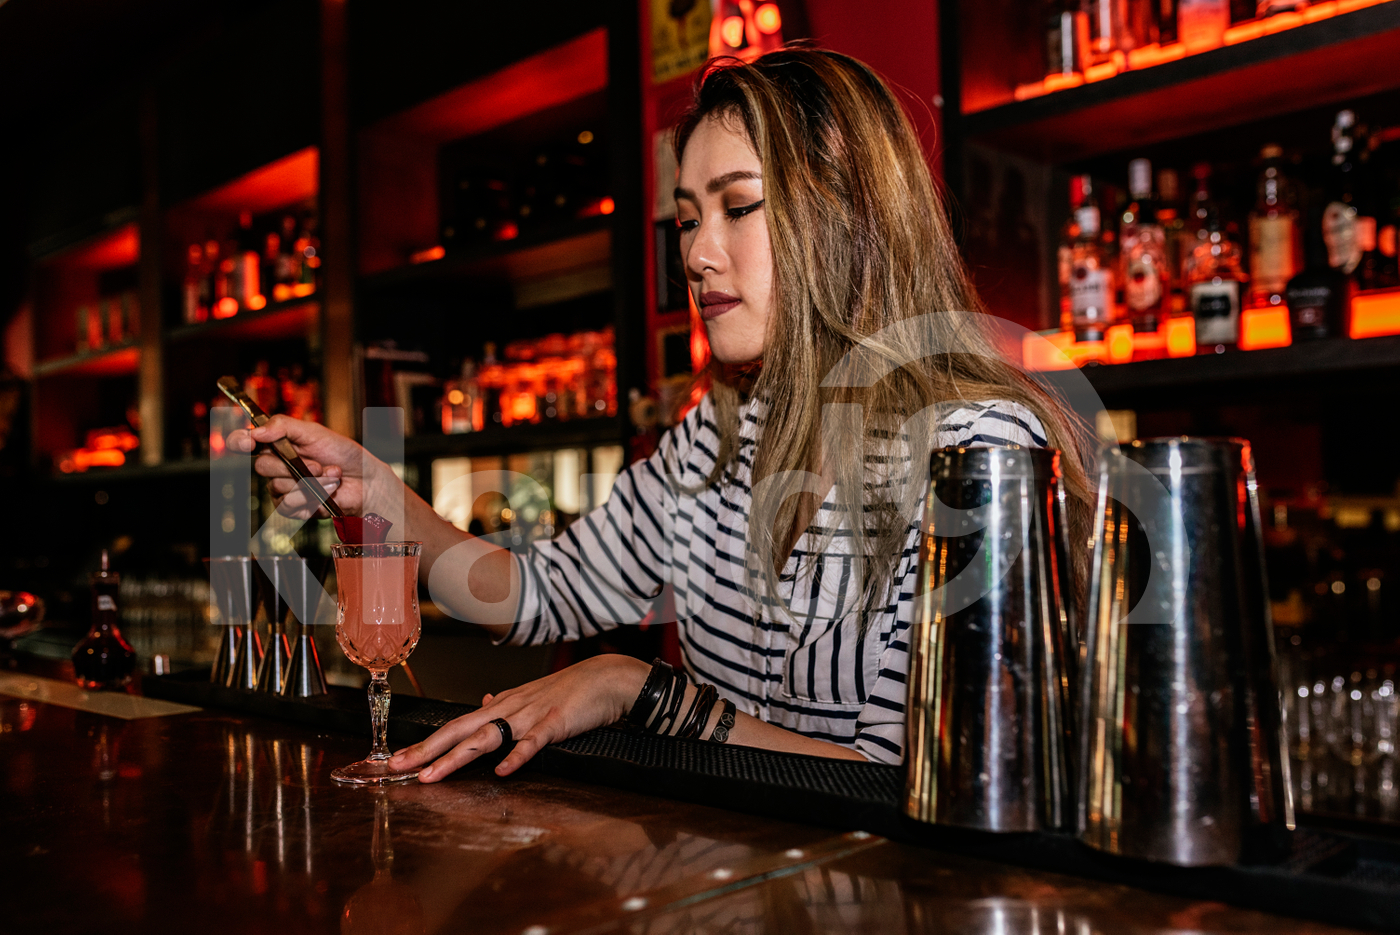 Female Asian bartender preparing a drink